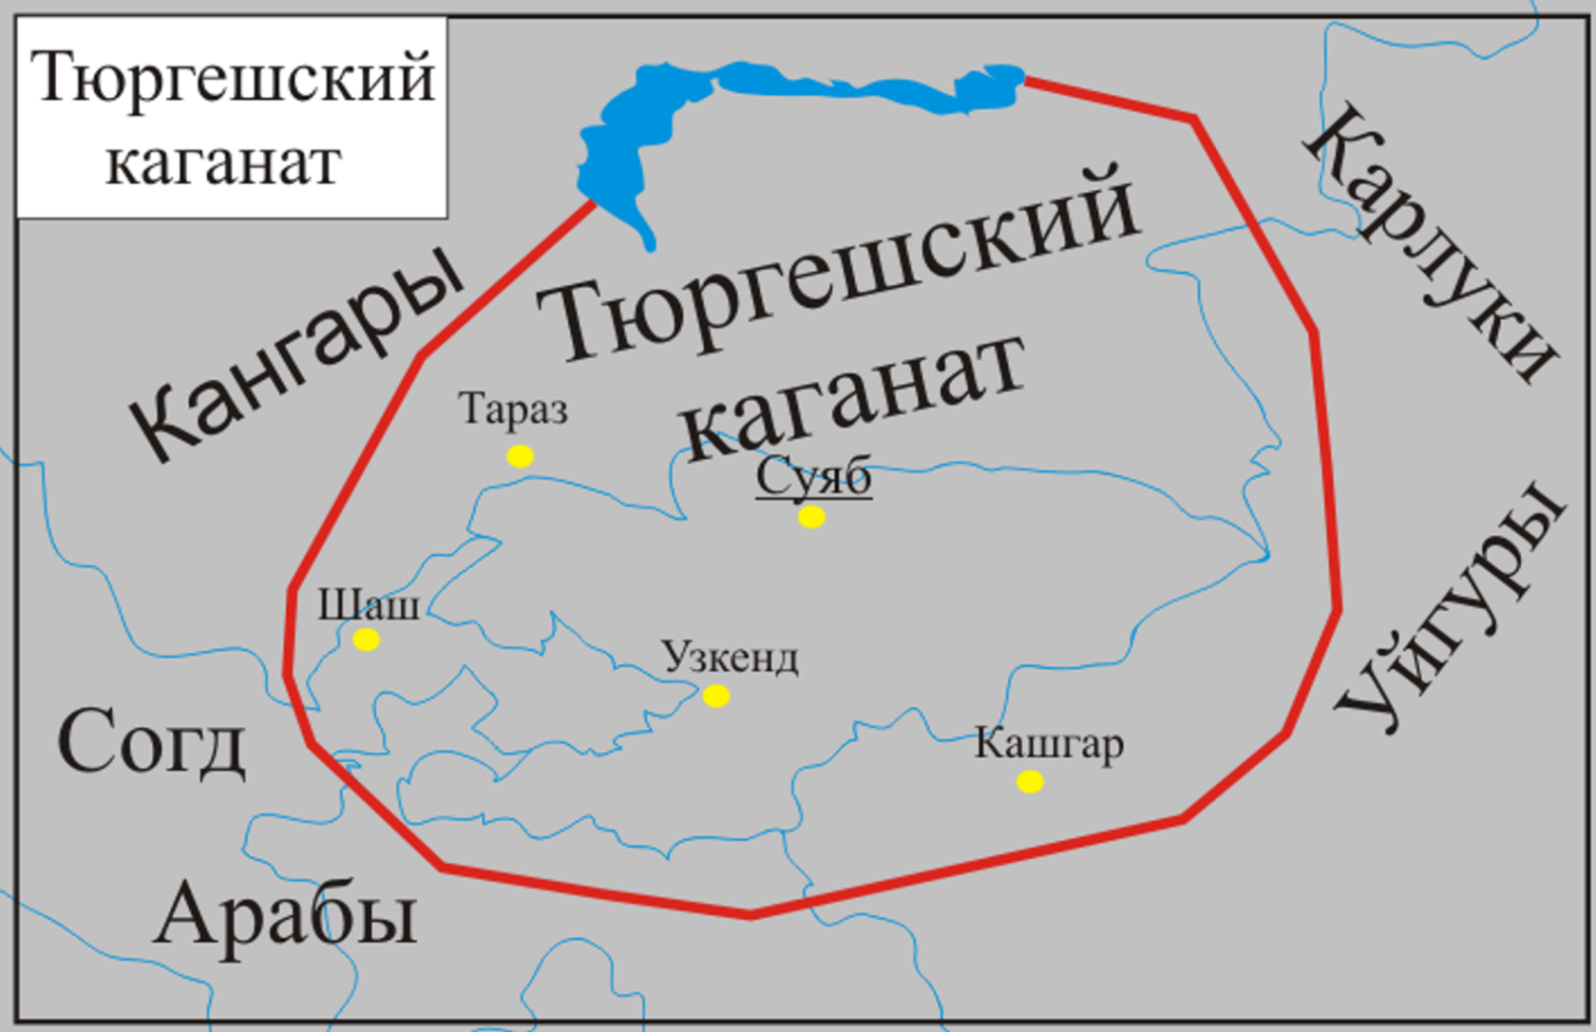 File:Тюркешский каганат.png - Wikimedia Commons